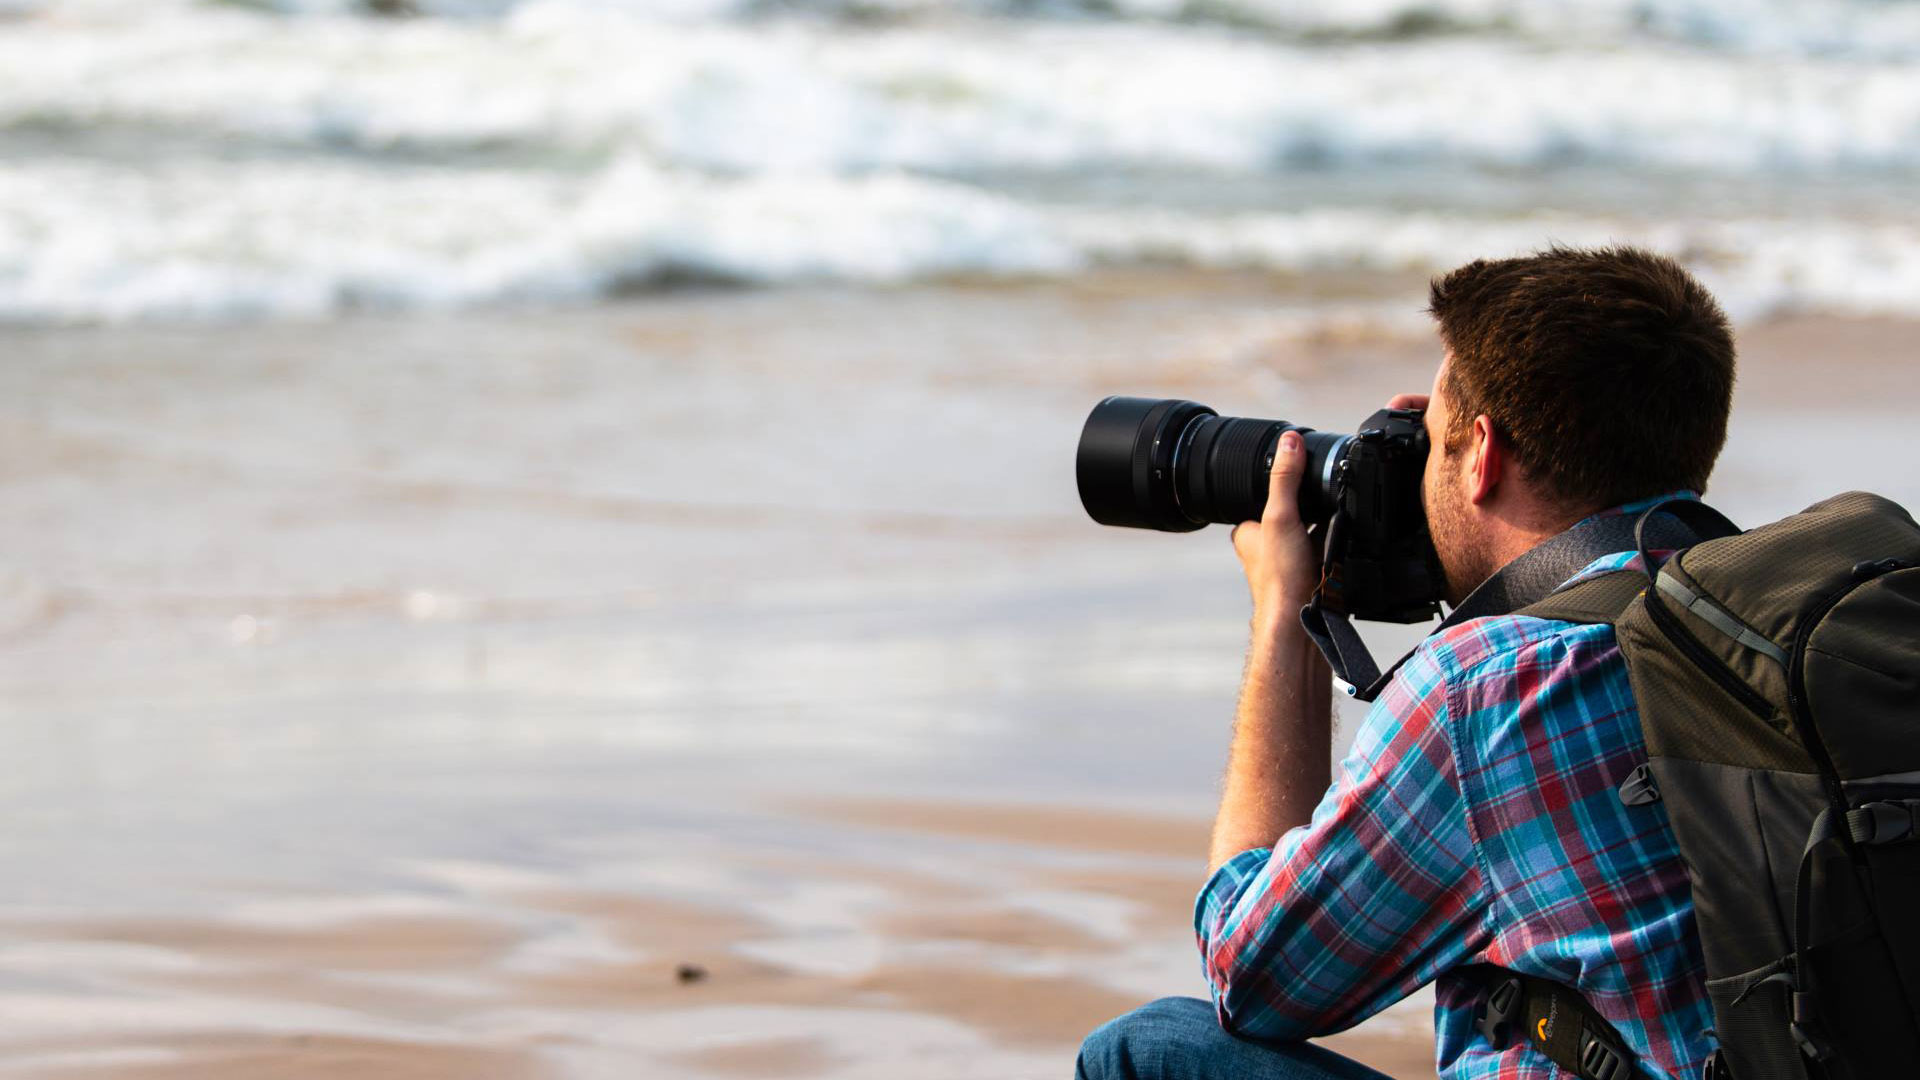 Photography 101: Why won't my camera take the picture? | Photofocus